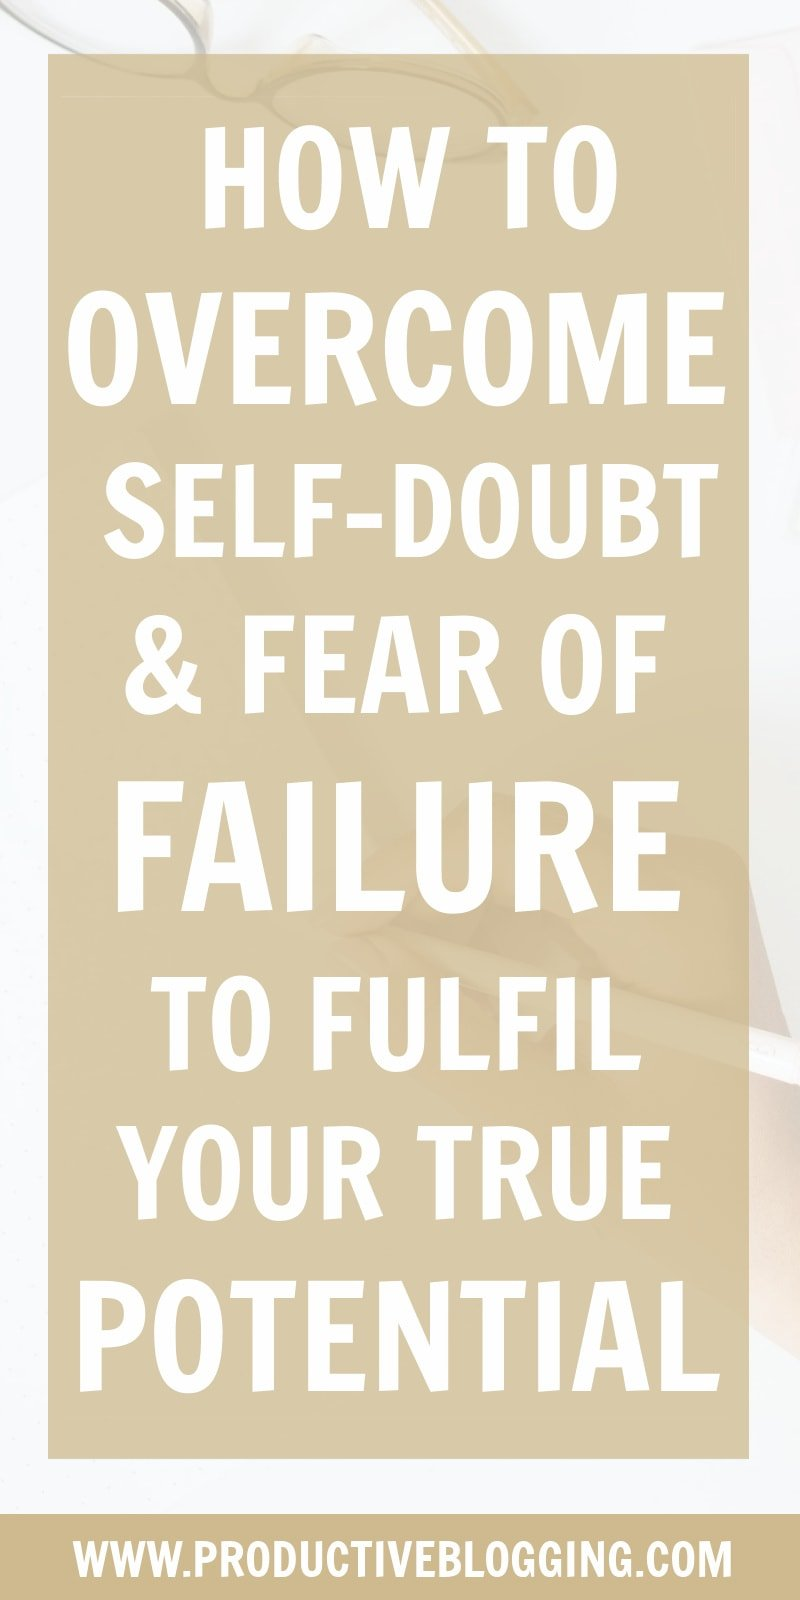 Is self-doubt and fear of failure holding you back and stopping you from achieving your blogging dreams? Here Vicki Montague, Wellbeing Coach, Podcaster and Owner of Free From Limits, shares her personal journey and explains how you can overcome your doubts and fears to fulfil your true potential. #selfdoubt #fearoffailure #truepotential #bloggingpotential #professionalblogger #bloggingismyjob #solopreneur #mompreneur #fempreneur #bloggingbiz #bloggingtips #productivitytips #productiveblogging